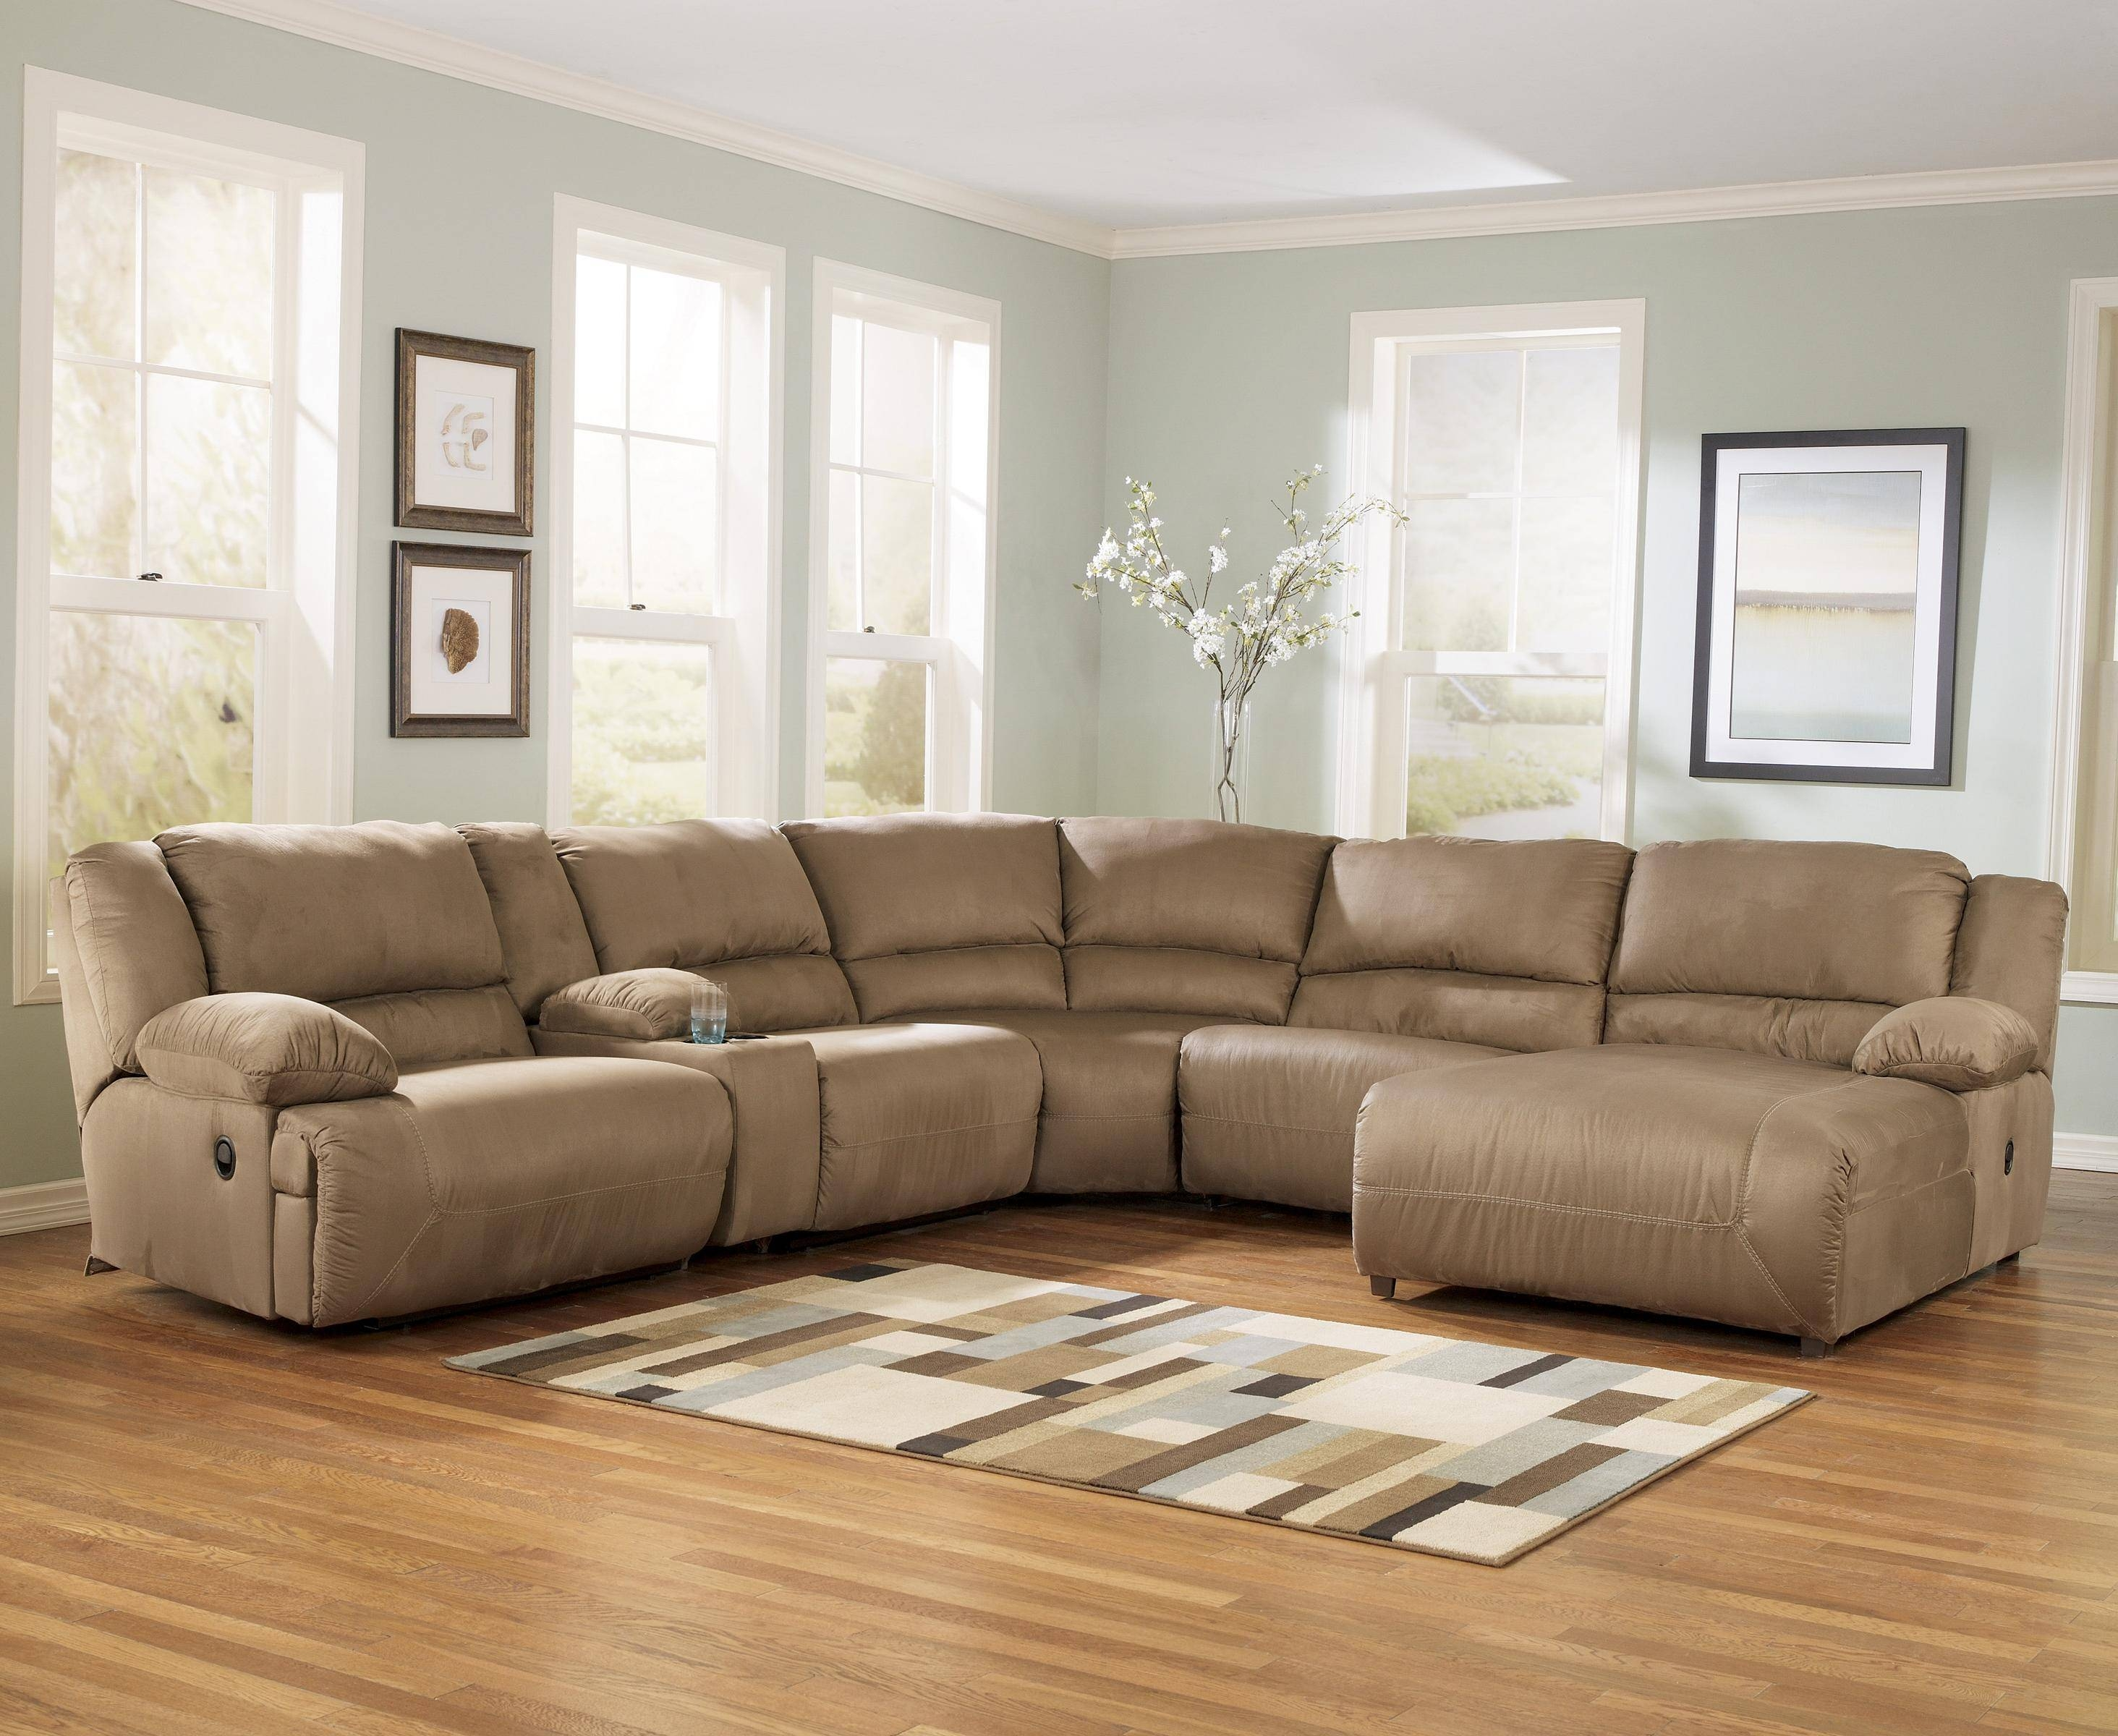 Signature Designashley Hogan - Mocha 6 Piece Motion Sectional in Motion Sectional Sofas (Image 21 of 30)